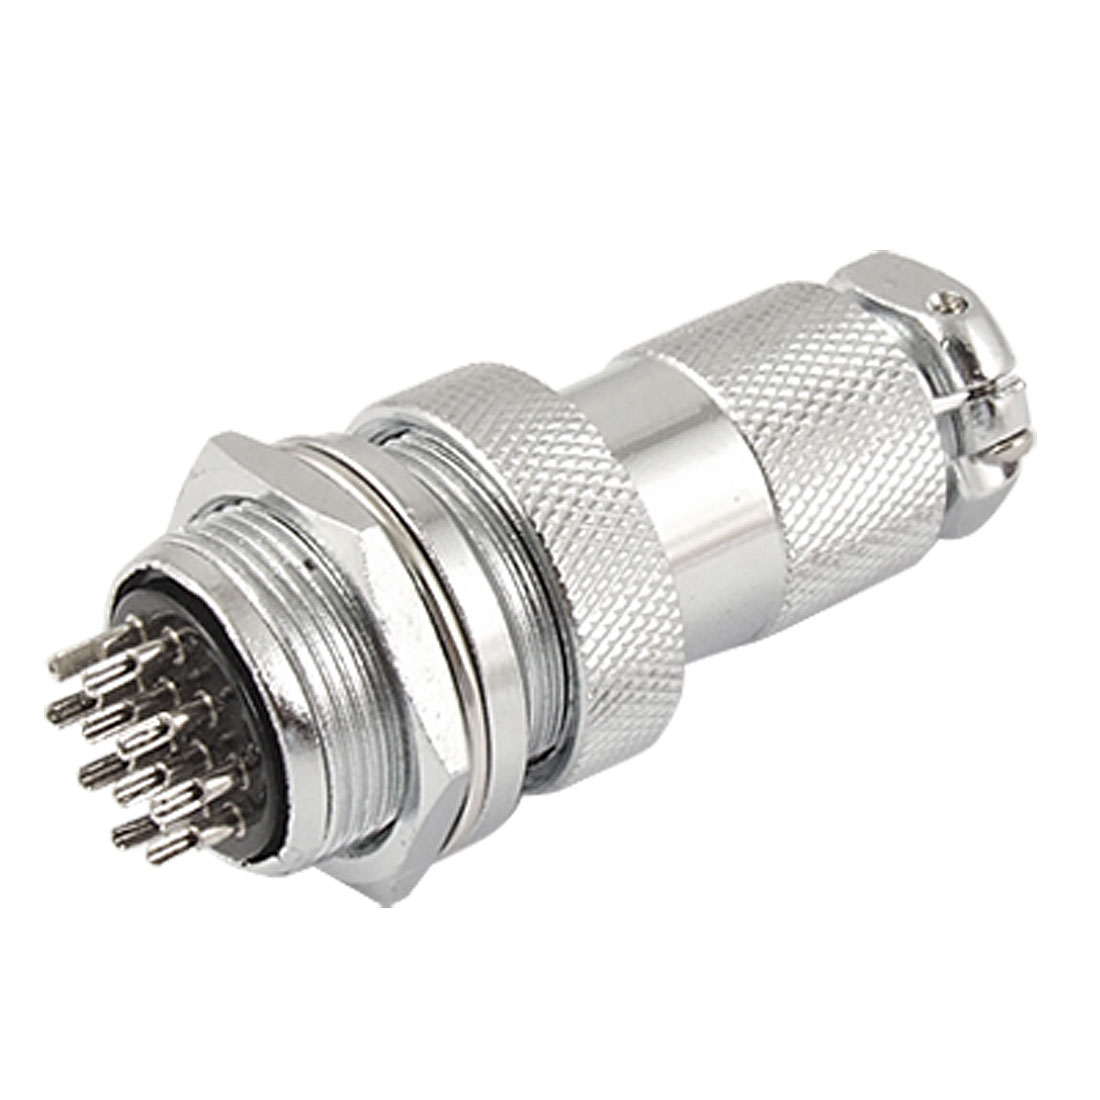 DF20-10B 10 Pins Aviation Circular Connector Adapter 250V 10A